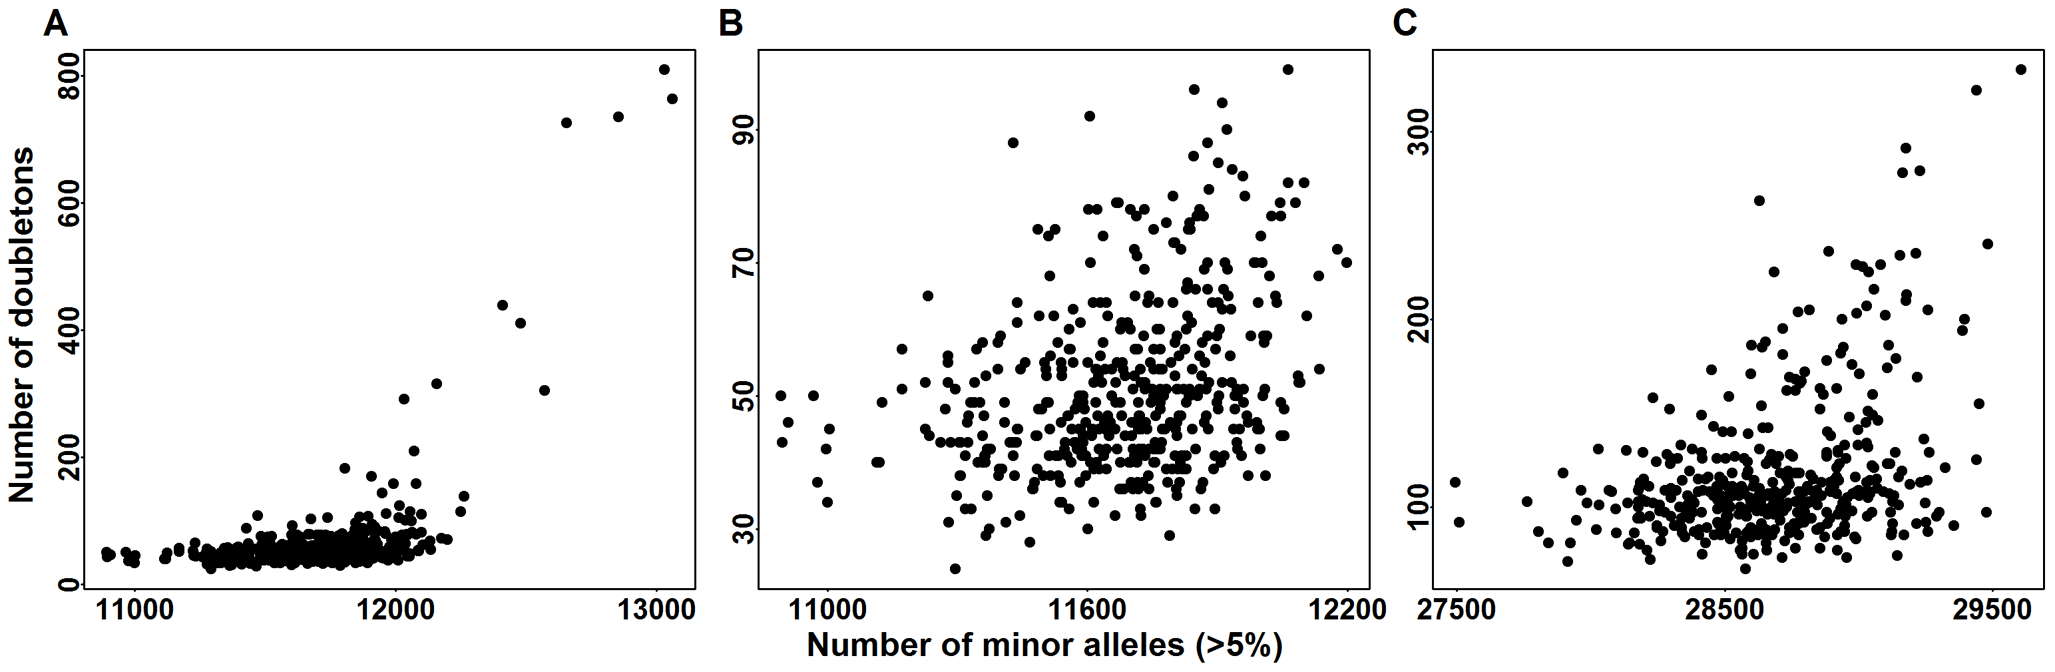 Doubletons counts versus minor allele counts (MAC_c) in common variants (CVs).